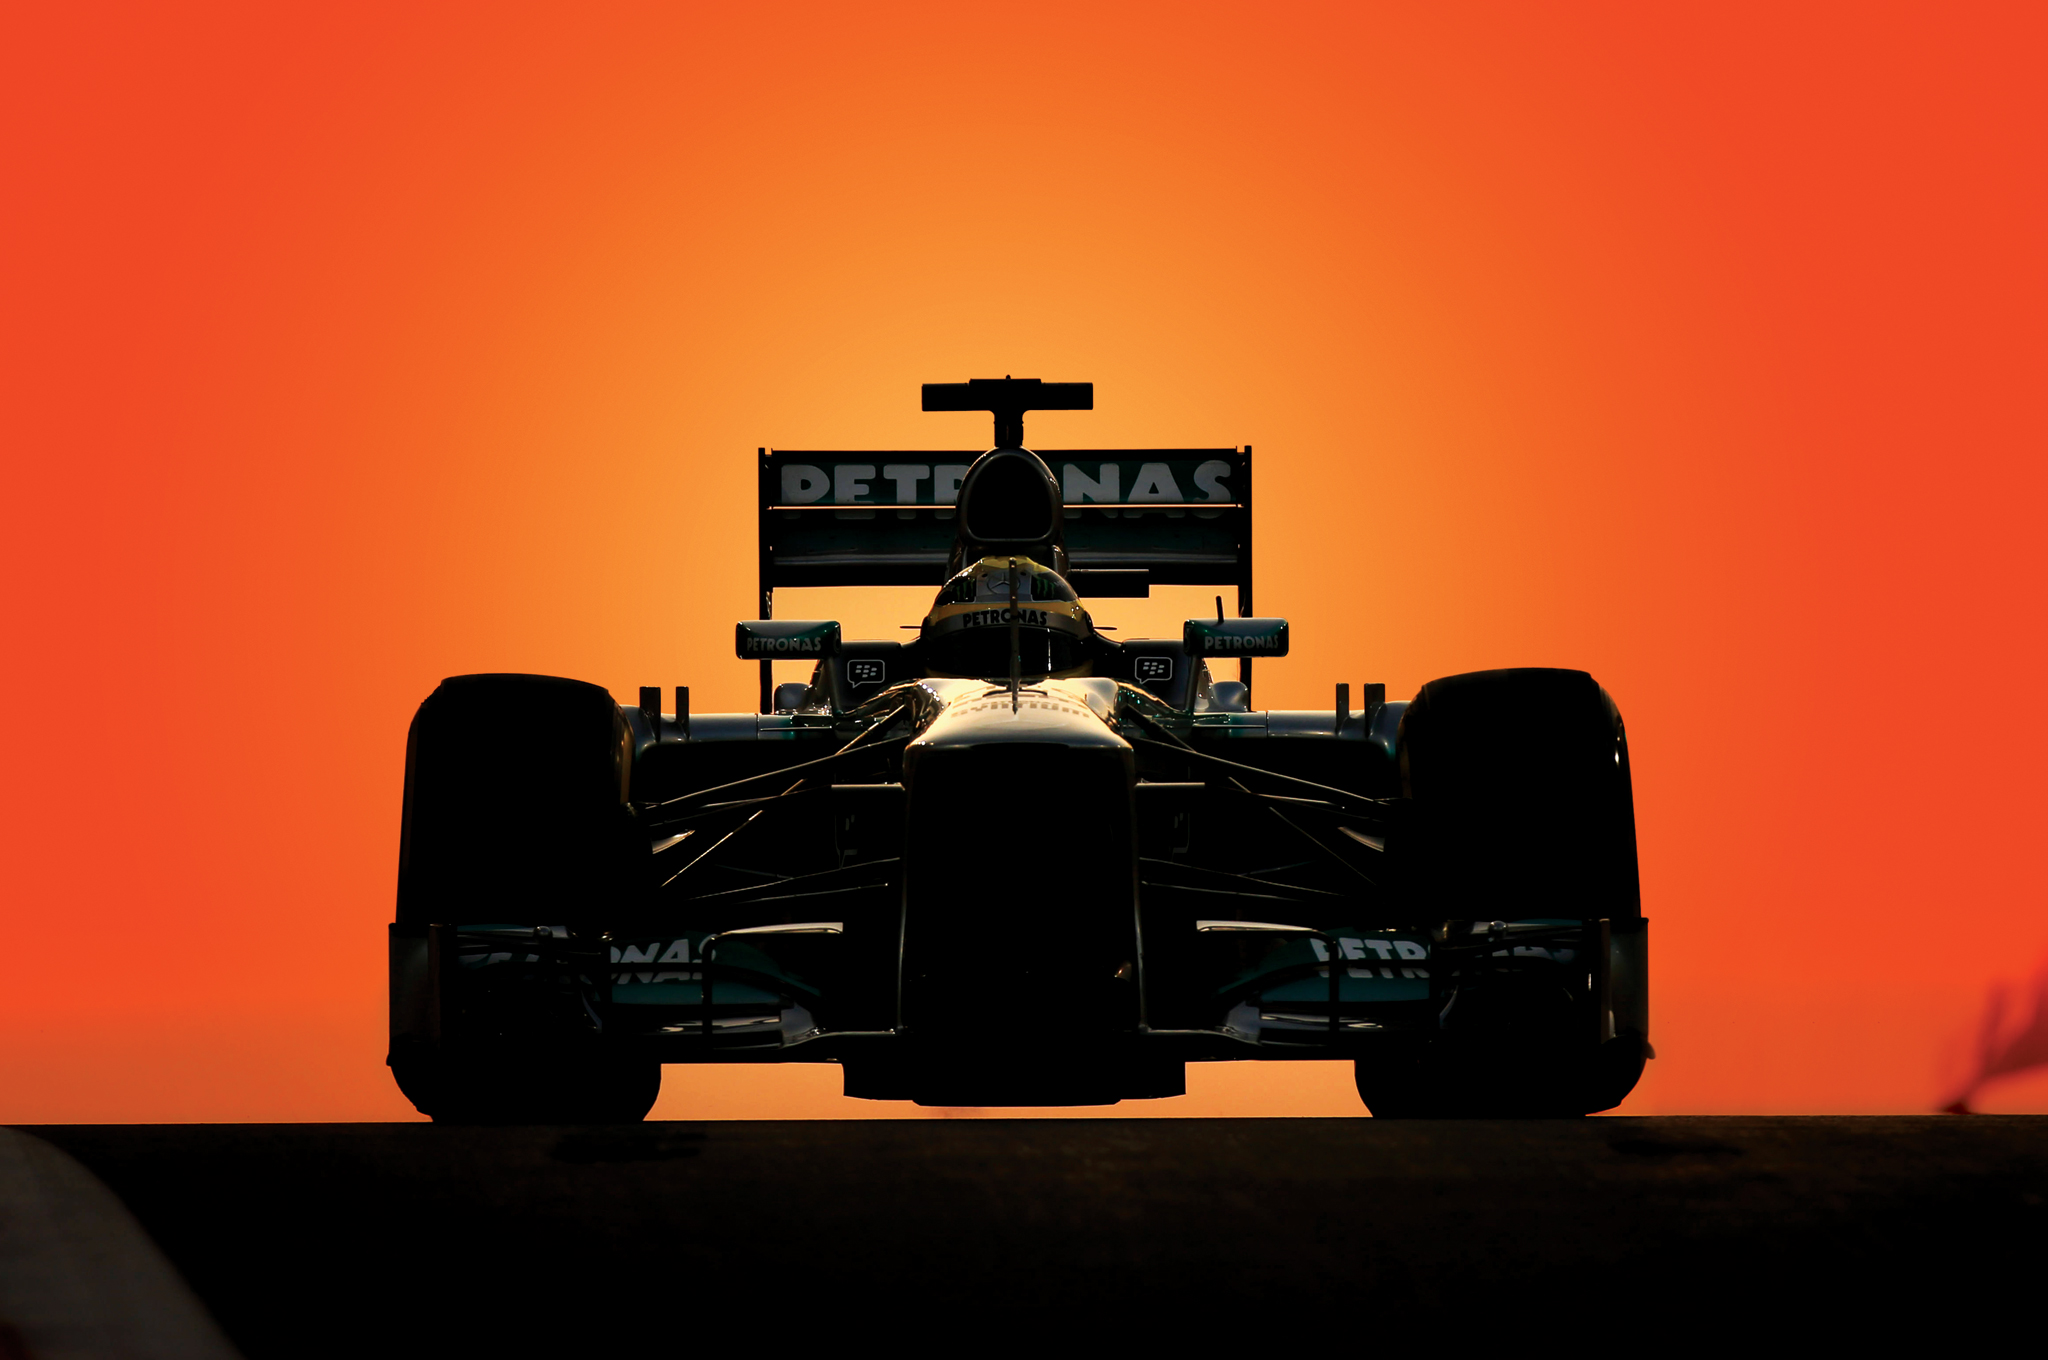 Mercedes AMG in F1: The Uncertainty Principle - The Big Picture